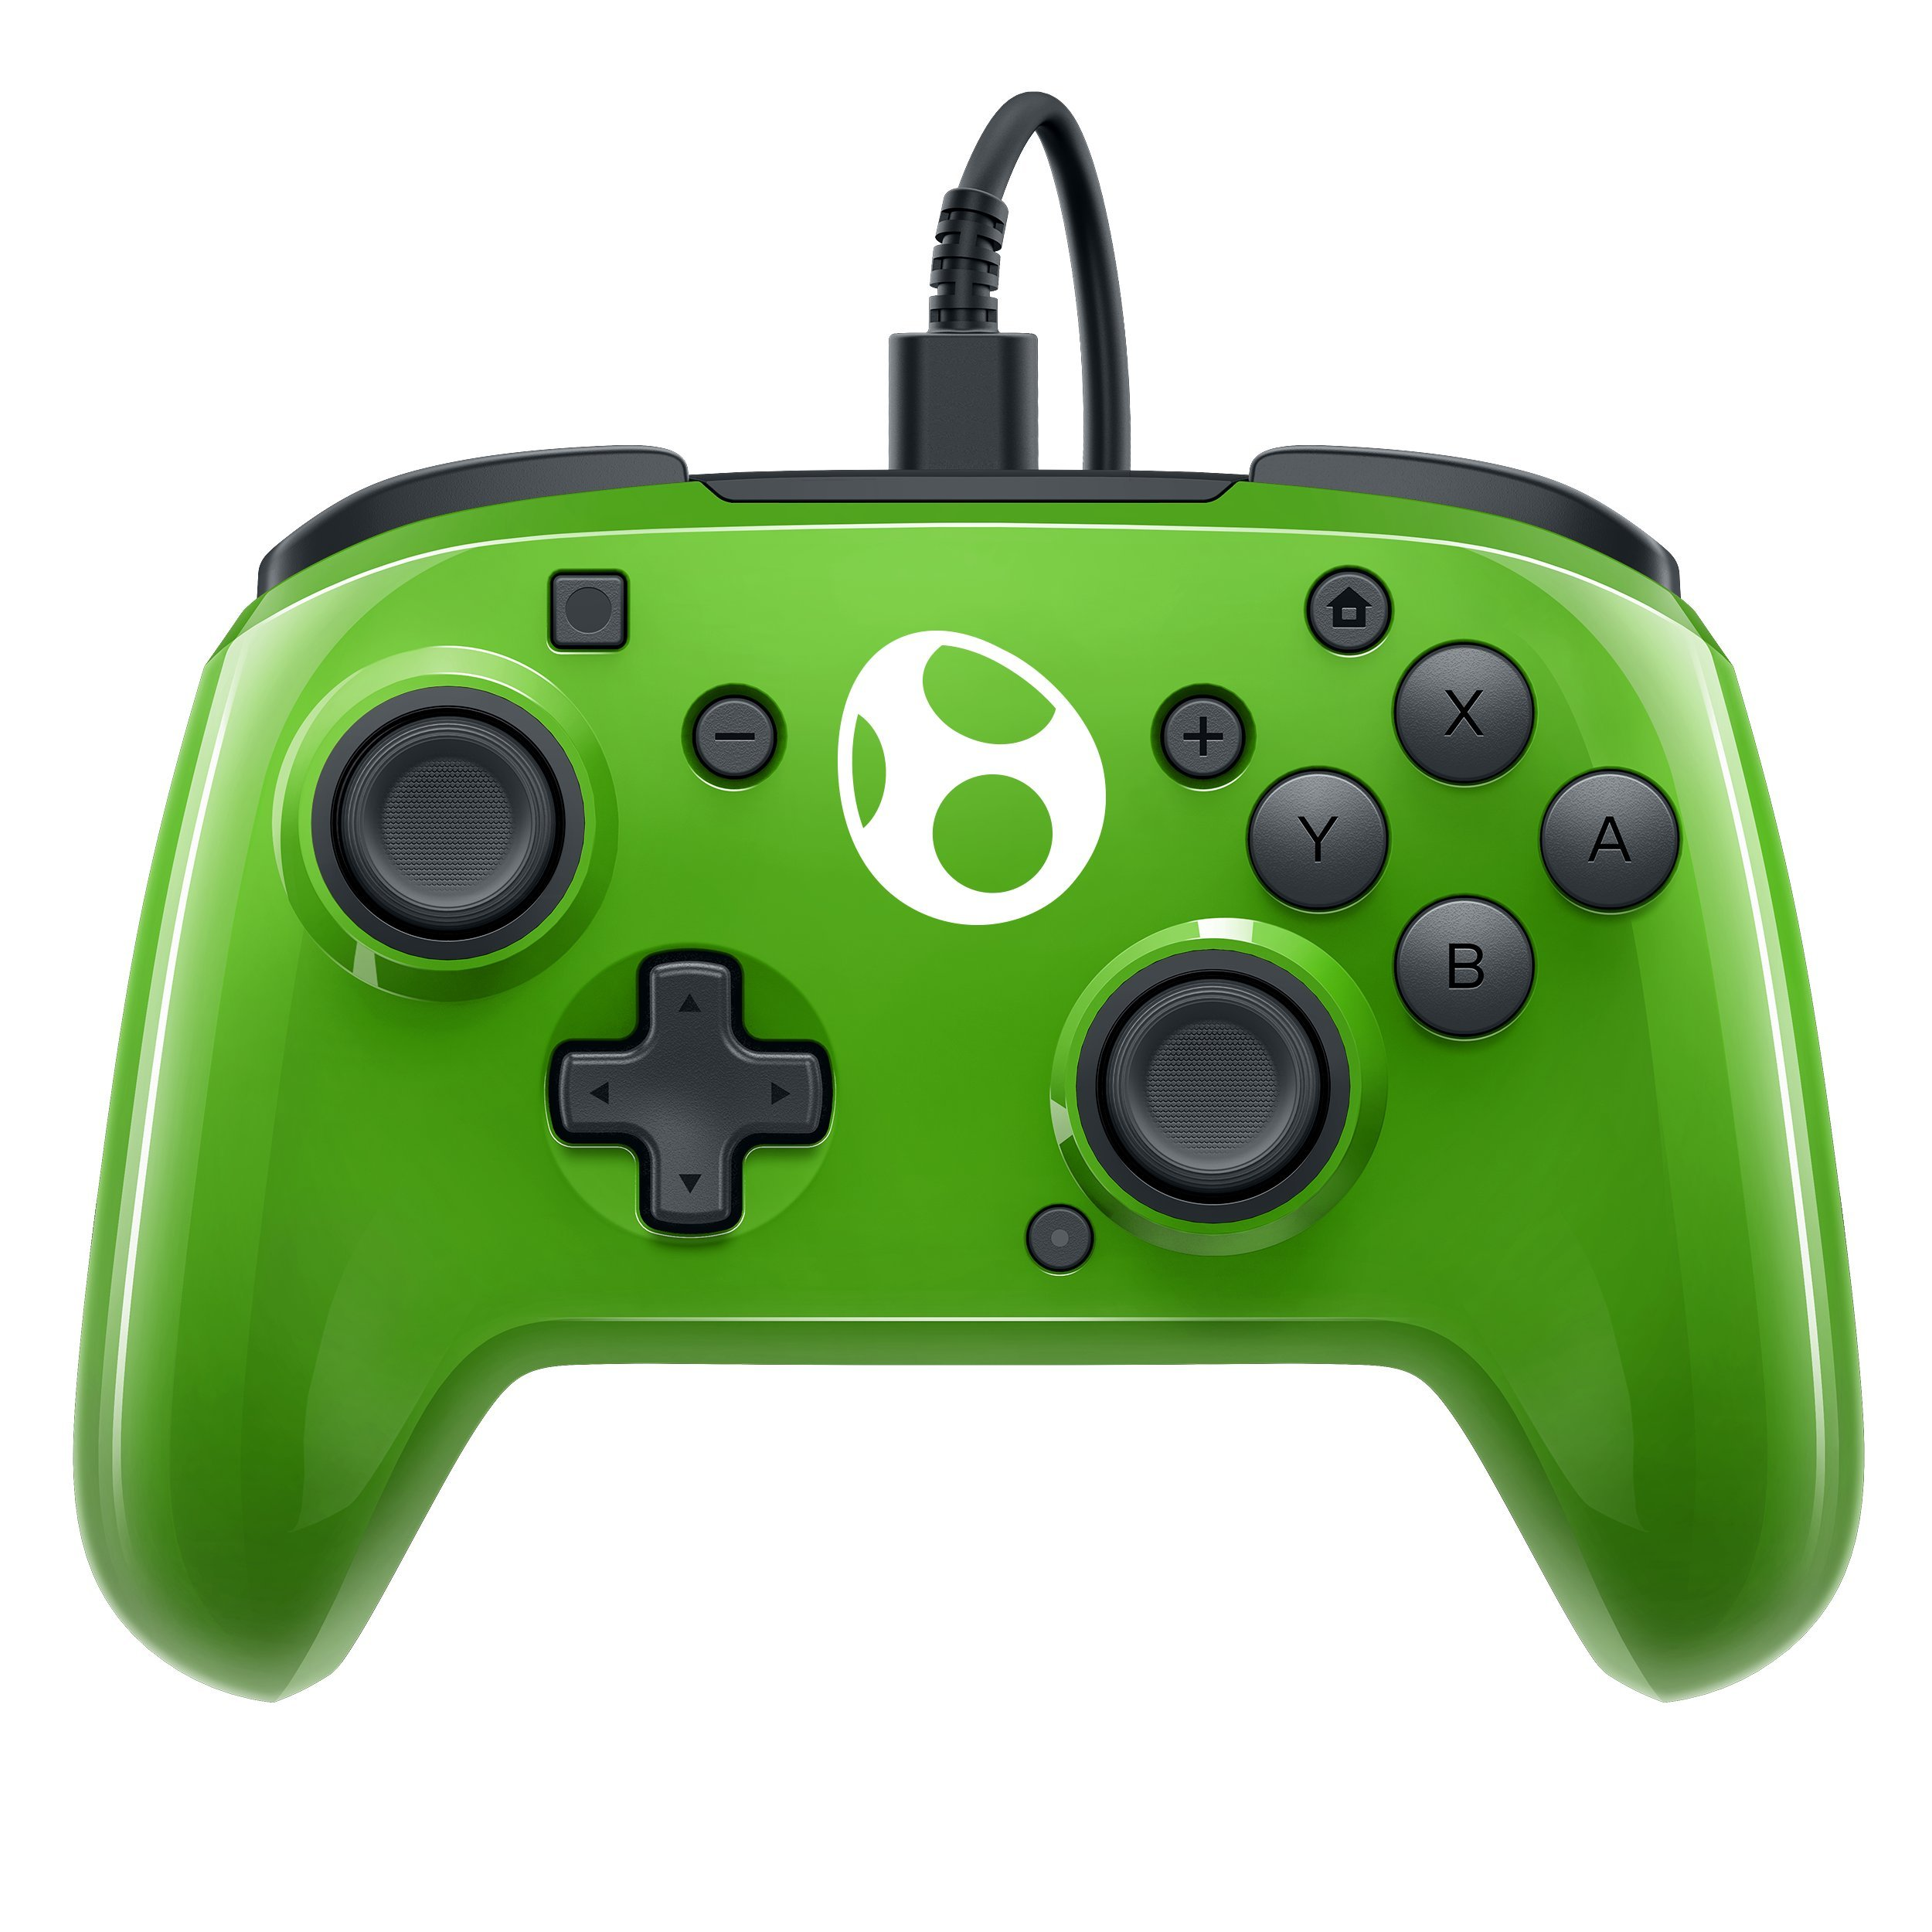 Pdp Nintendo Switch Faceoff Yoshi Wired Pro Controller 500 056 Na D2 Nintendo Switch Amazon Com Au Video Games